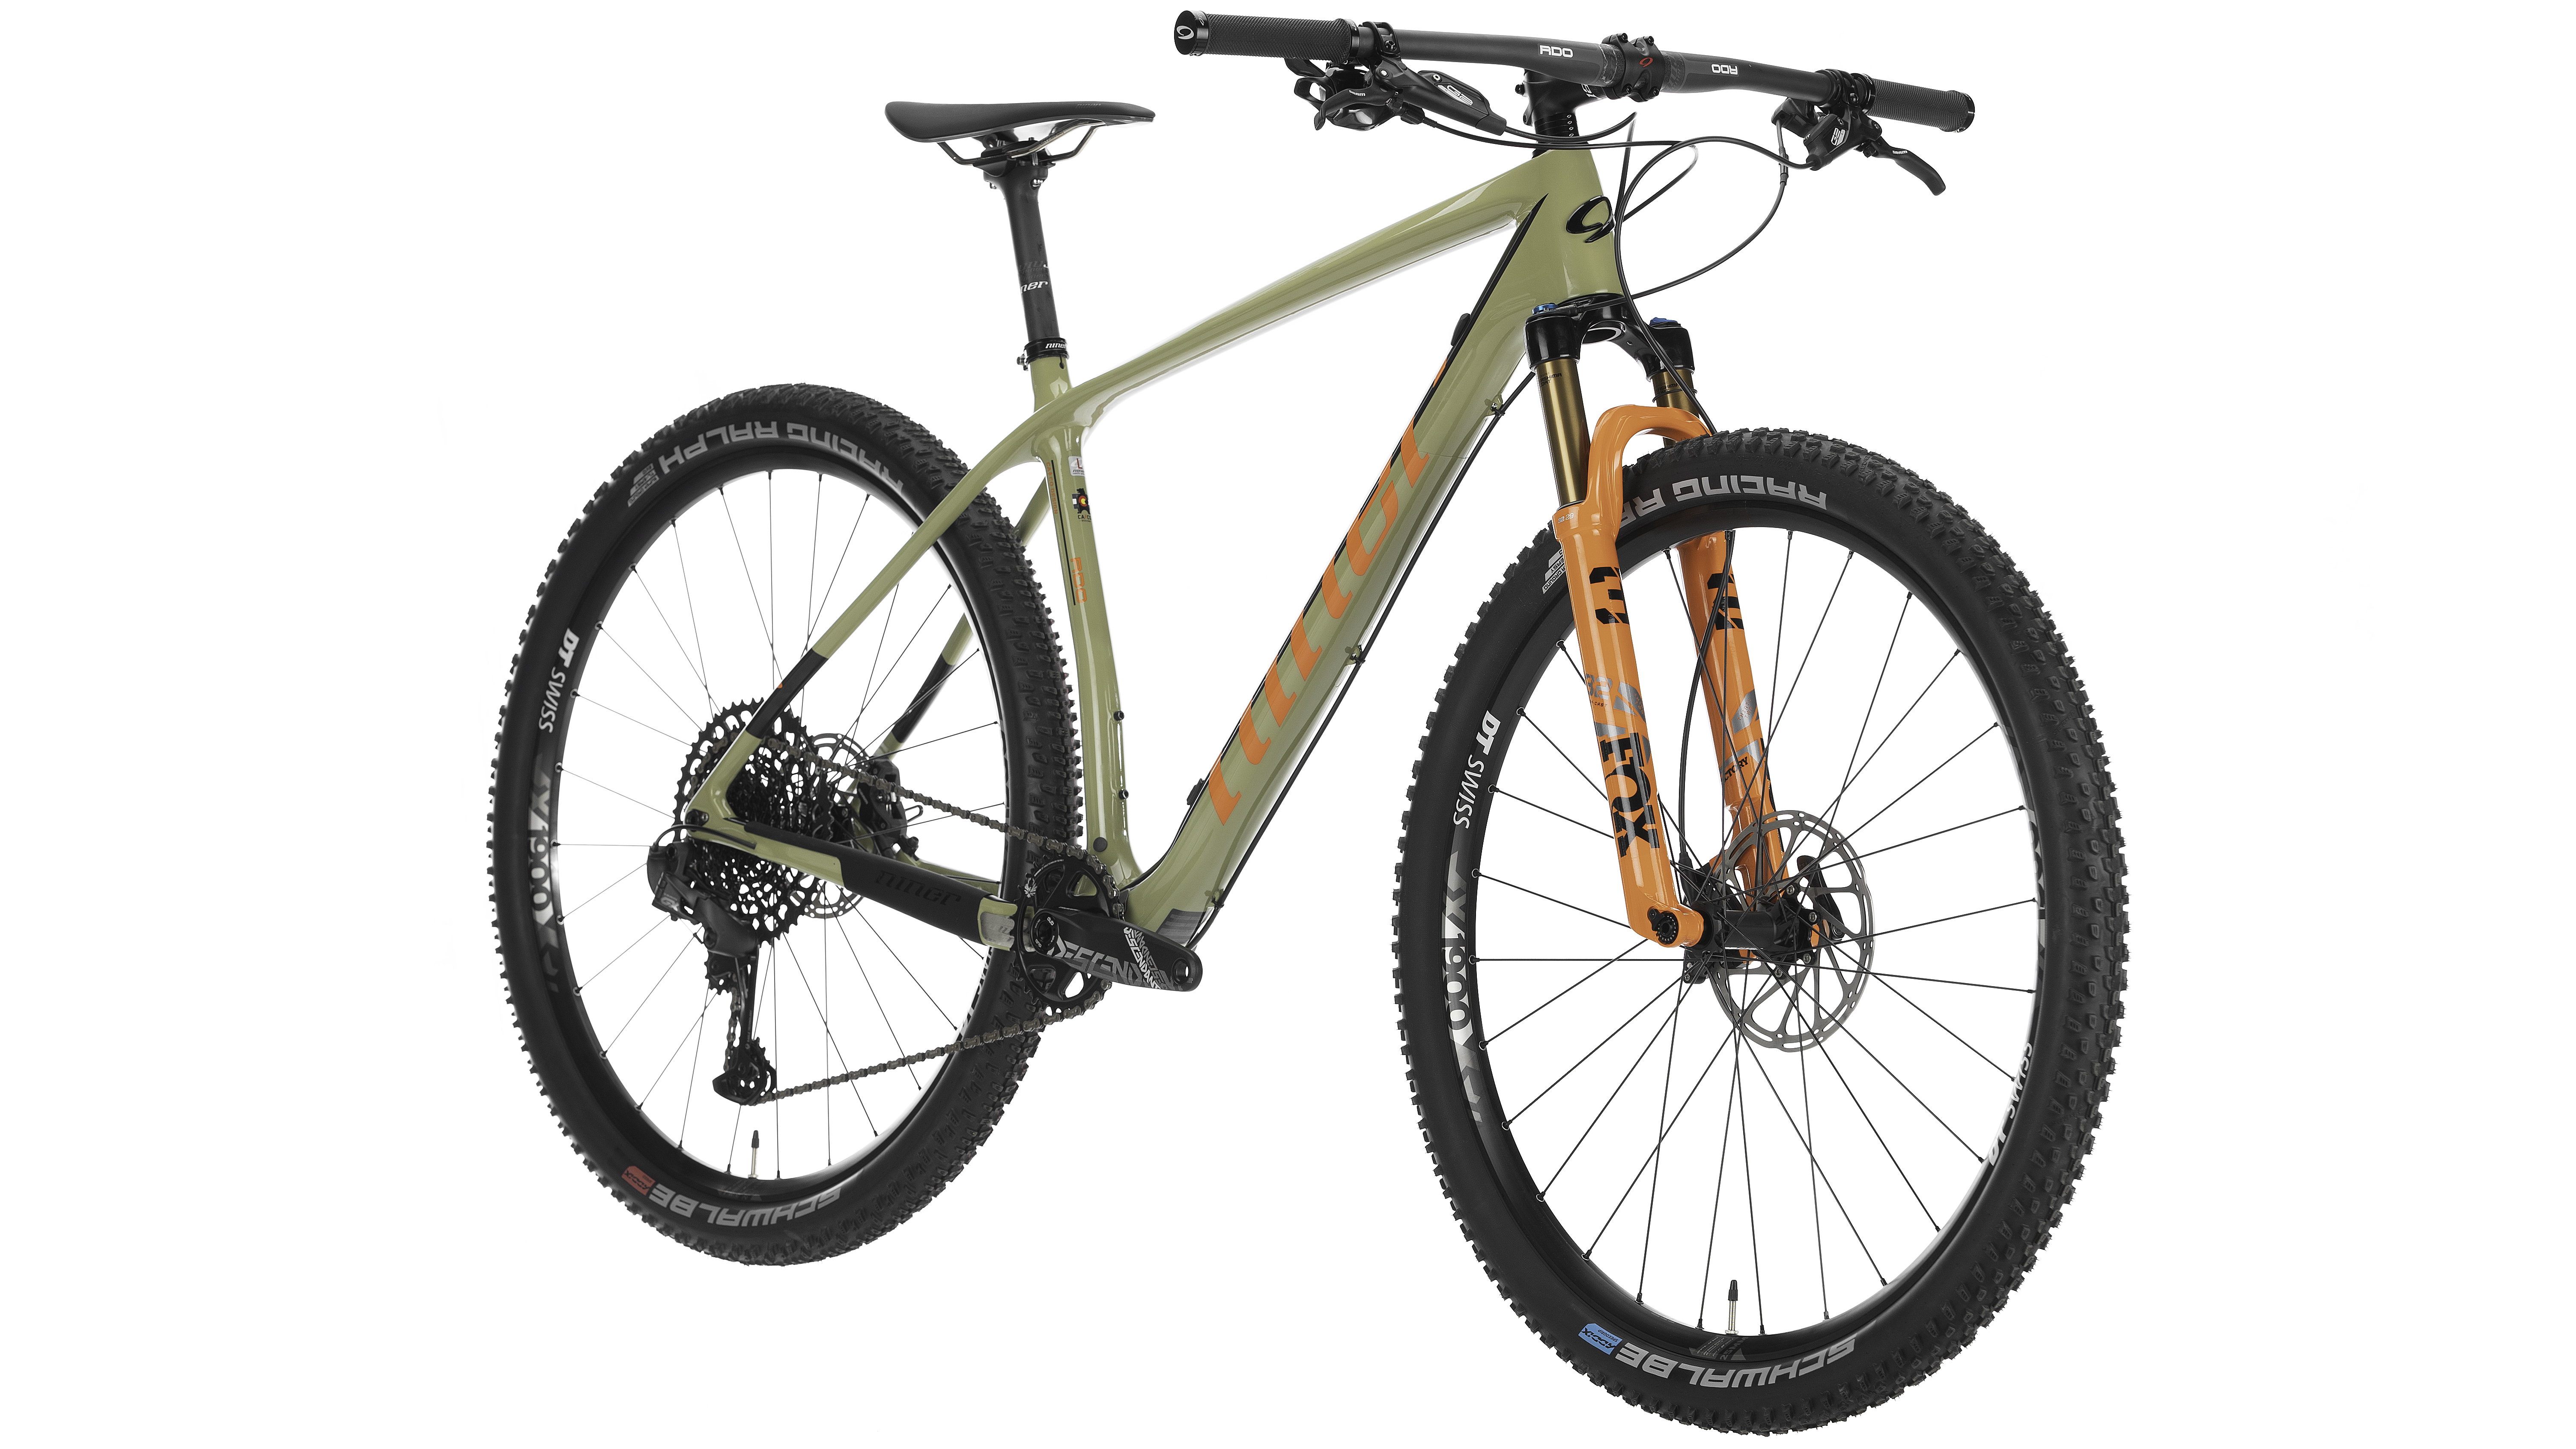 The frame of Niner AIR 9